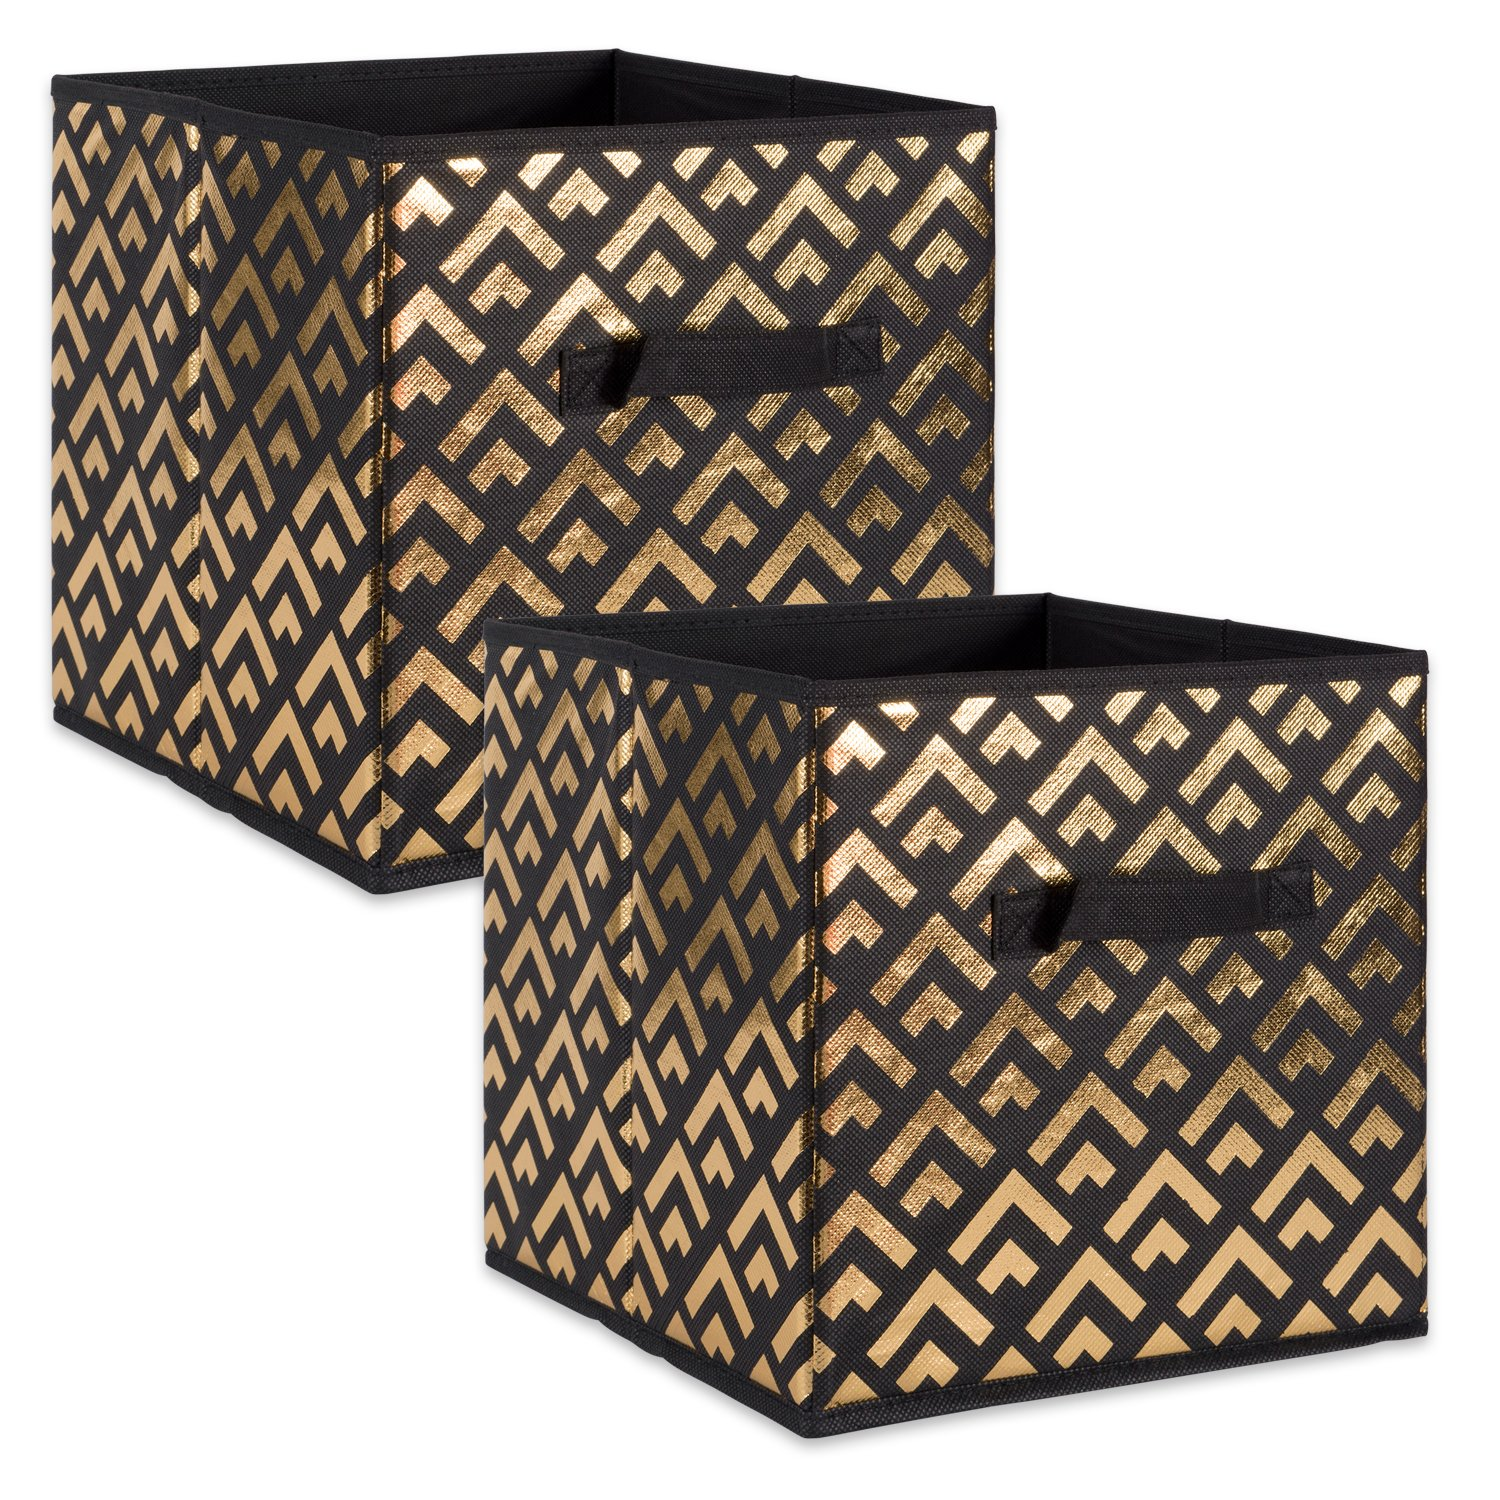 DII Fabric Storage Bins for Nursery, Offices, Home Organization, Containers Are Made To Fit Standard Cube Organizers (13x13x13) Double Diamond Gold on Black - Set of 2